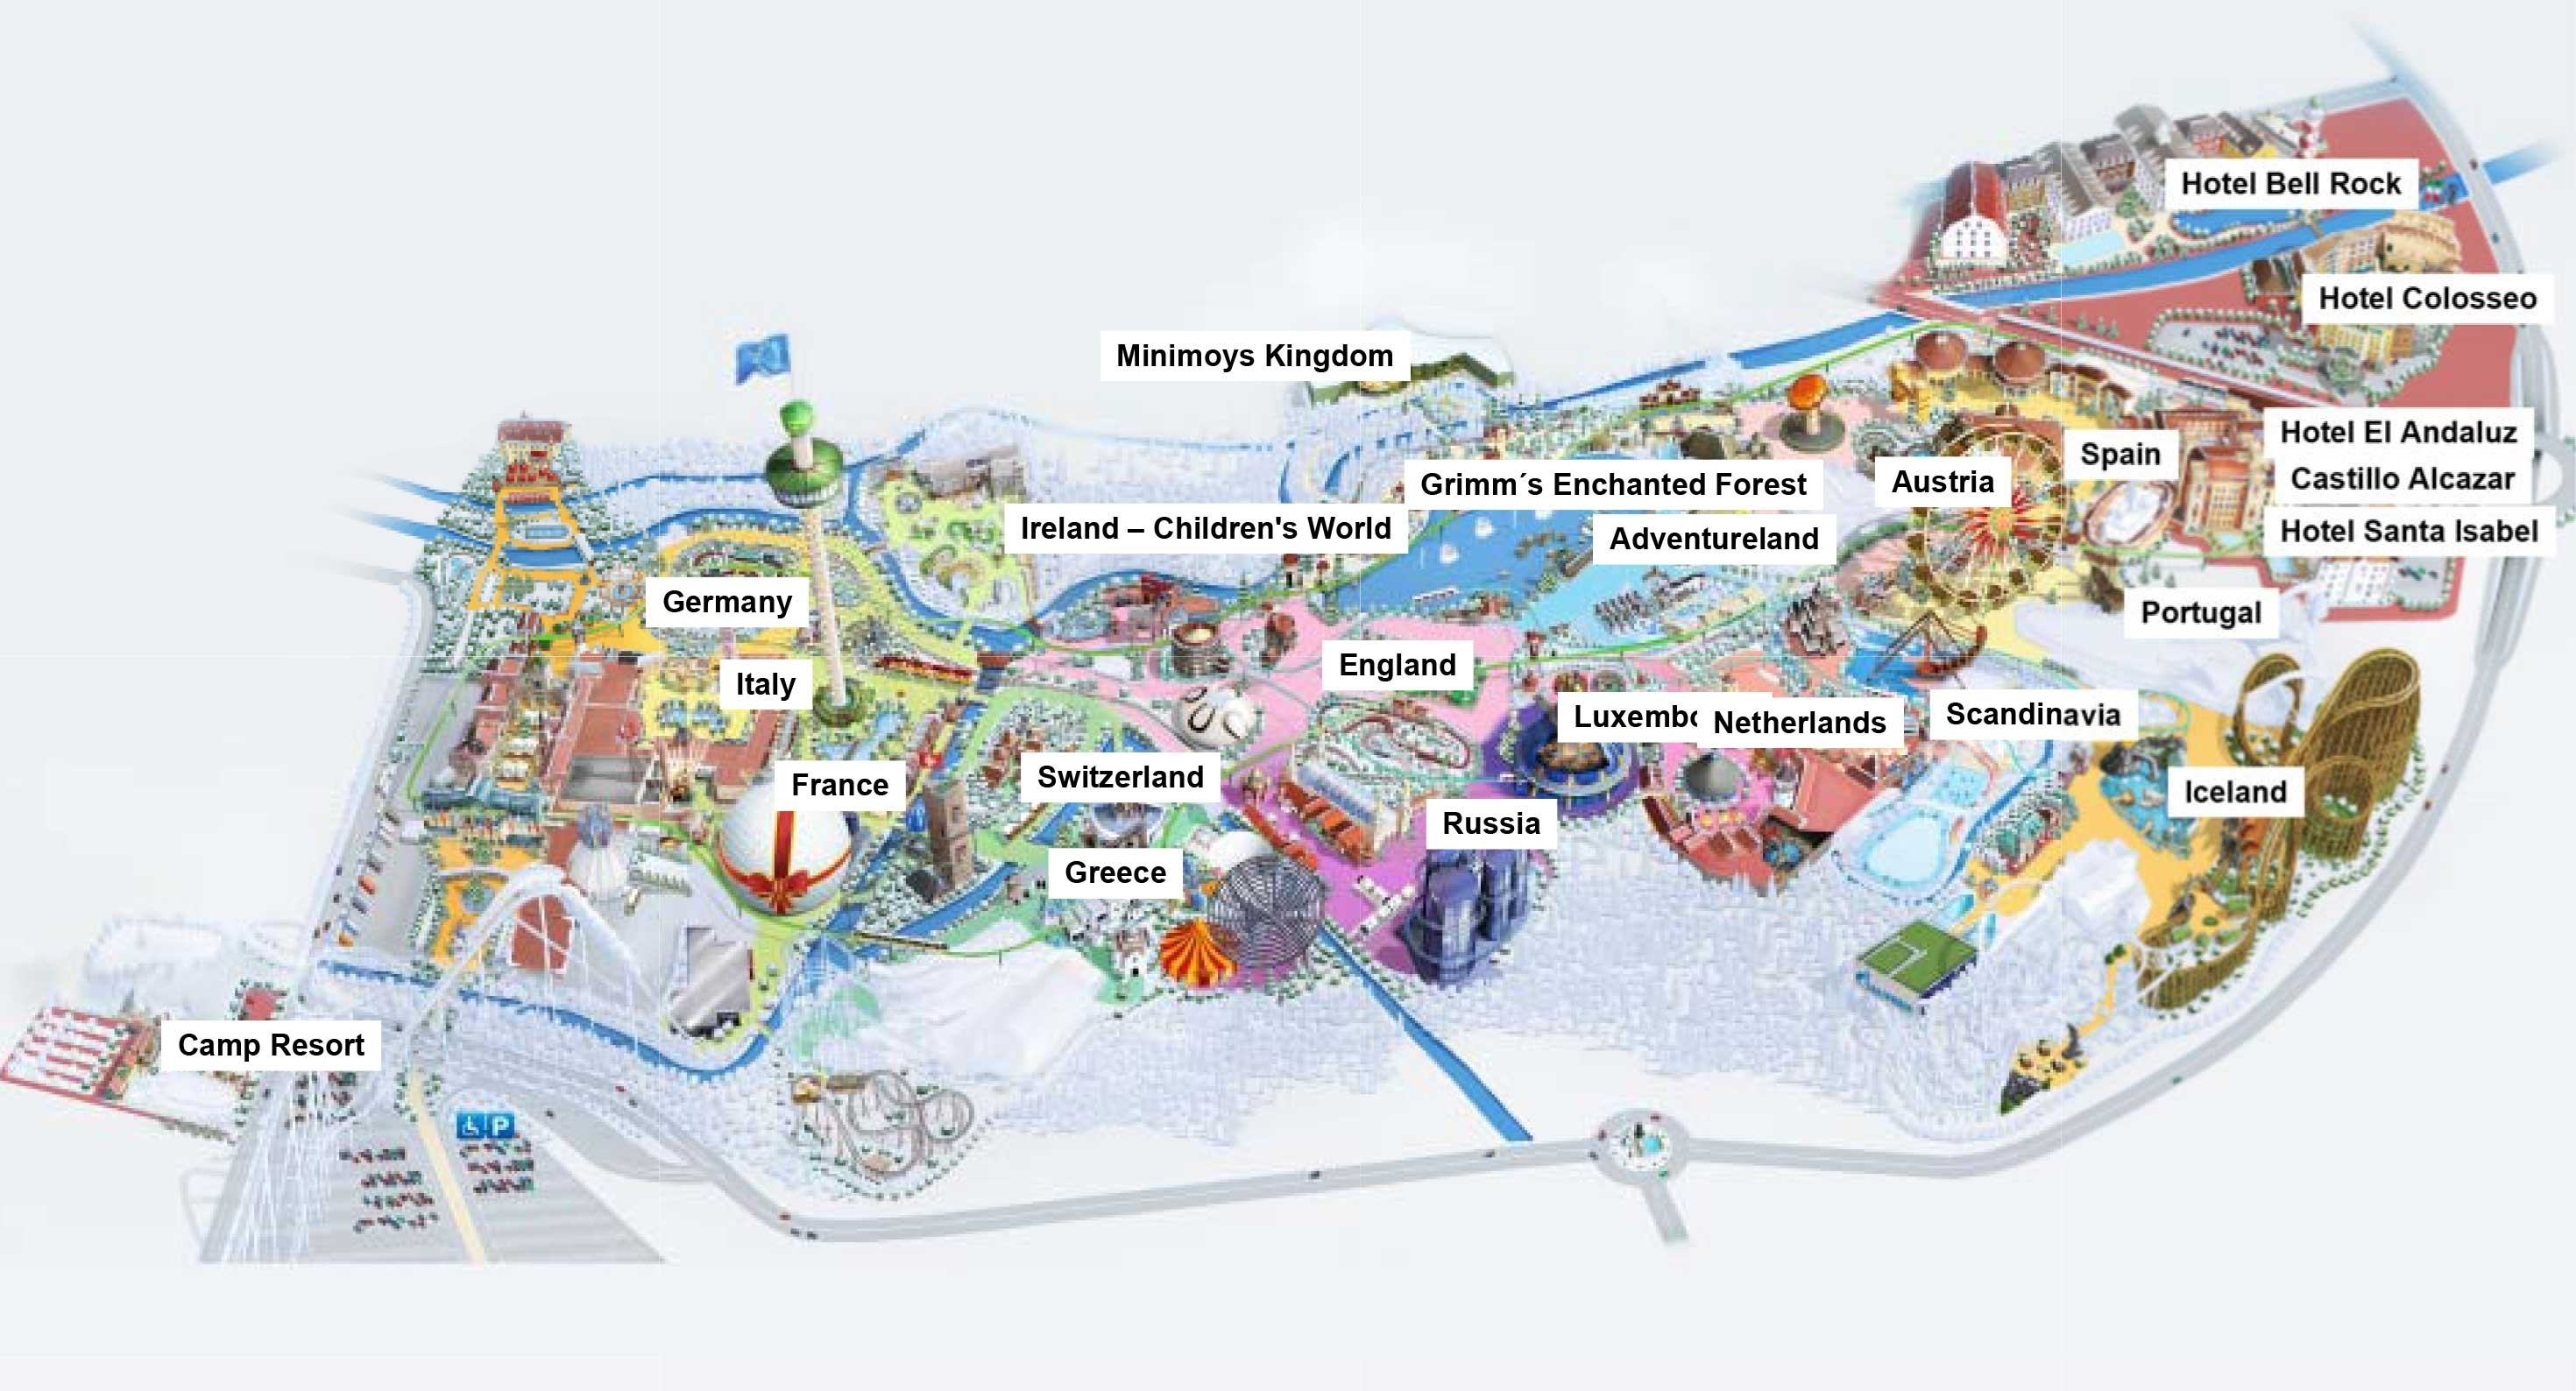 Europa-Park Germany Map Related Keywords & Suggestions - Europa-Park with regard to Europa Park In Germany Map